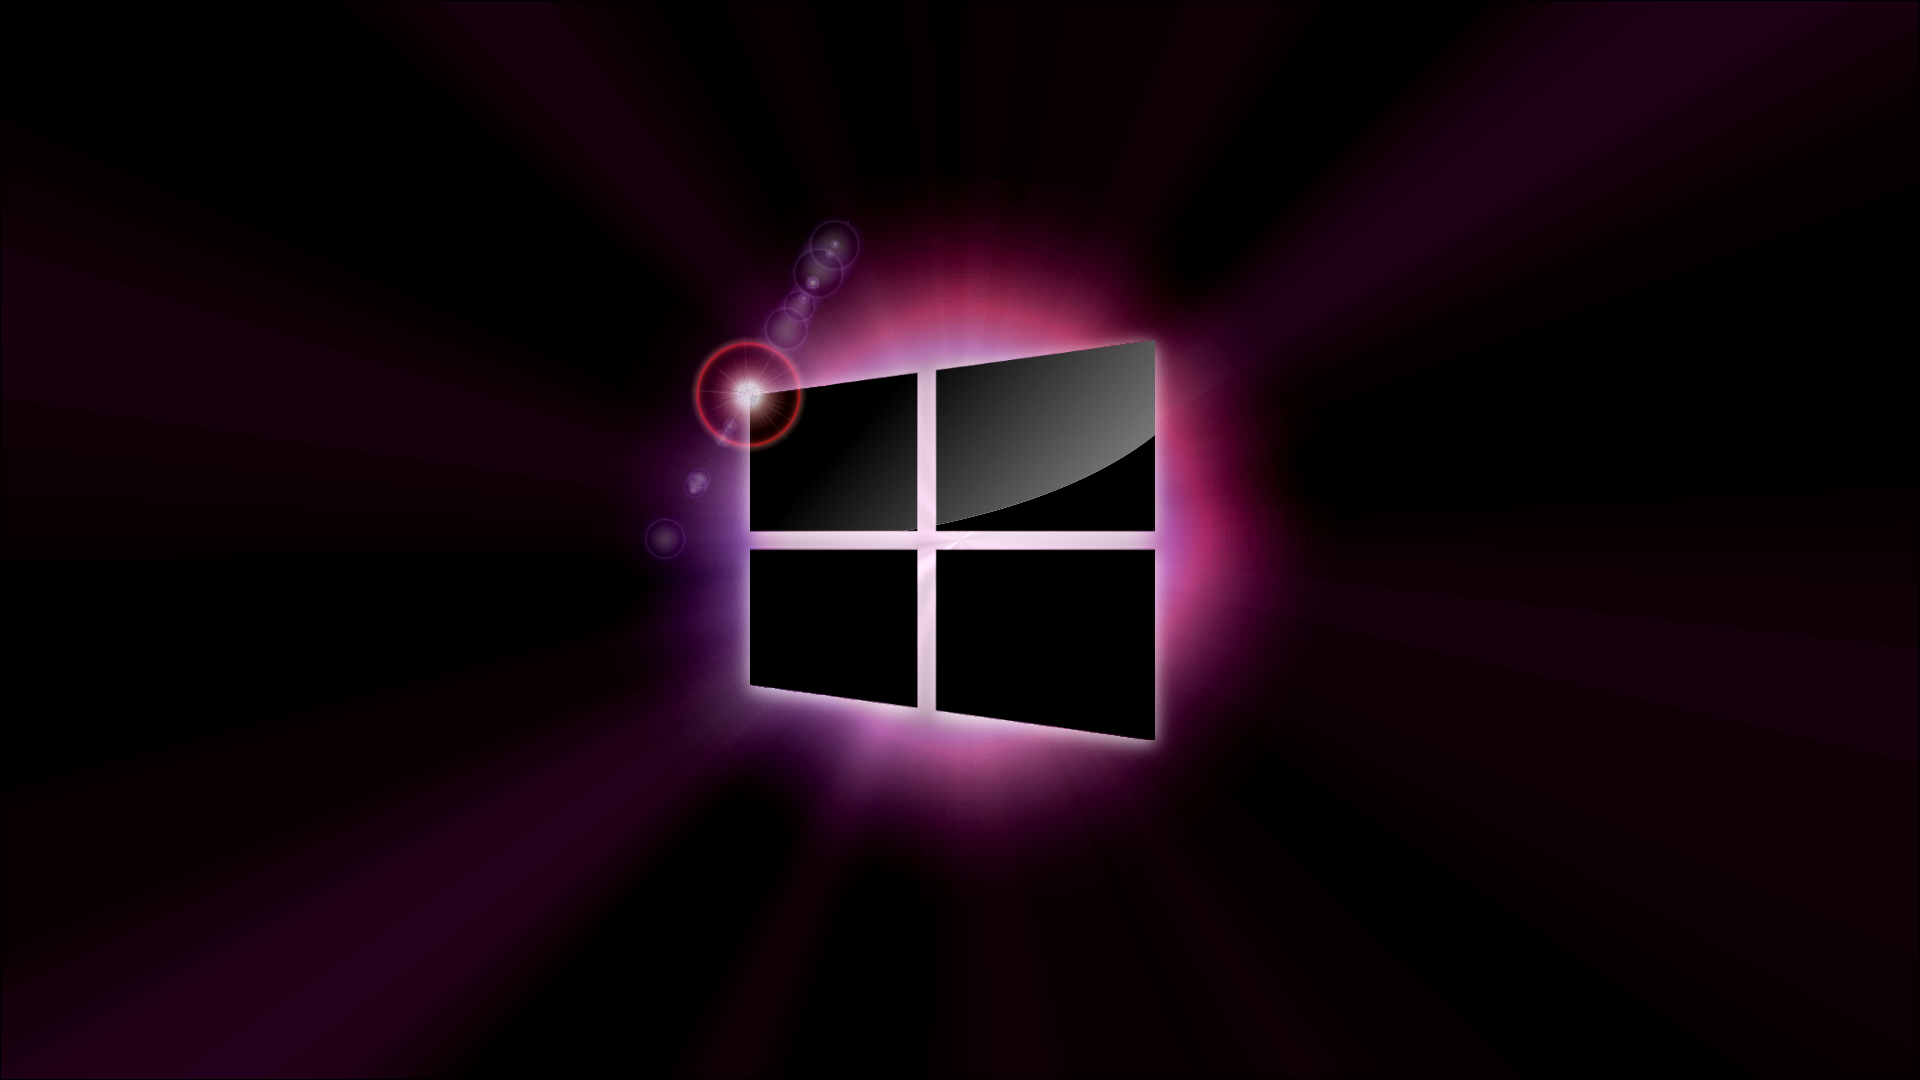 windows_8_wallpaper___purple_flare_by_fuller1754-d57ryop.png